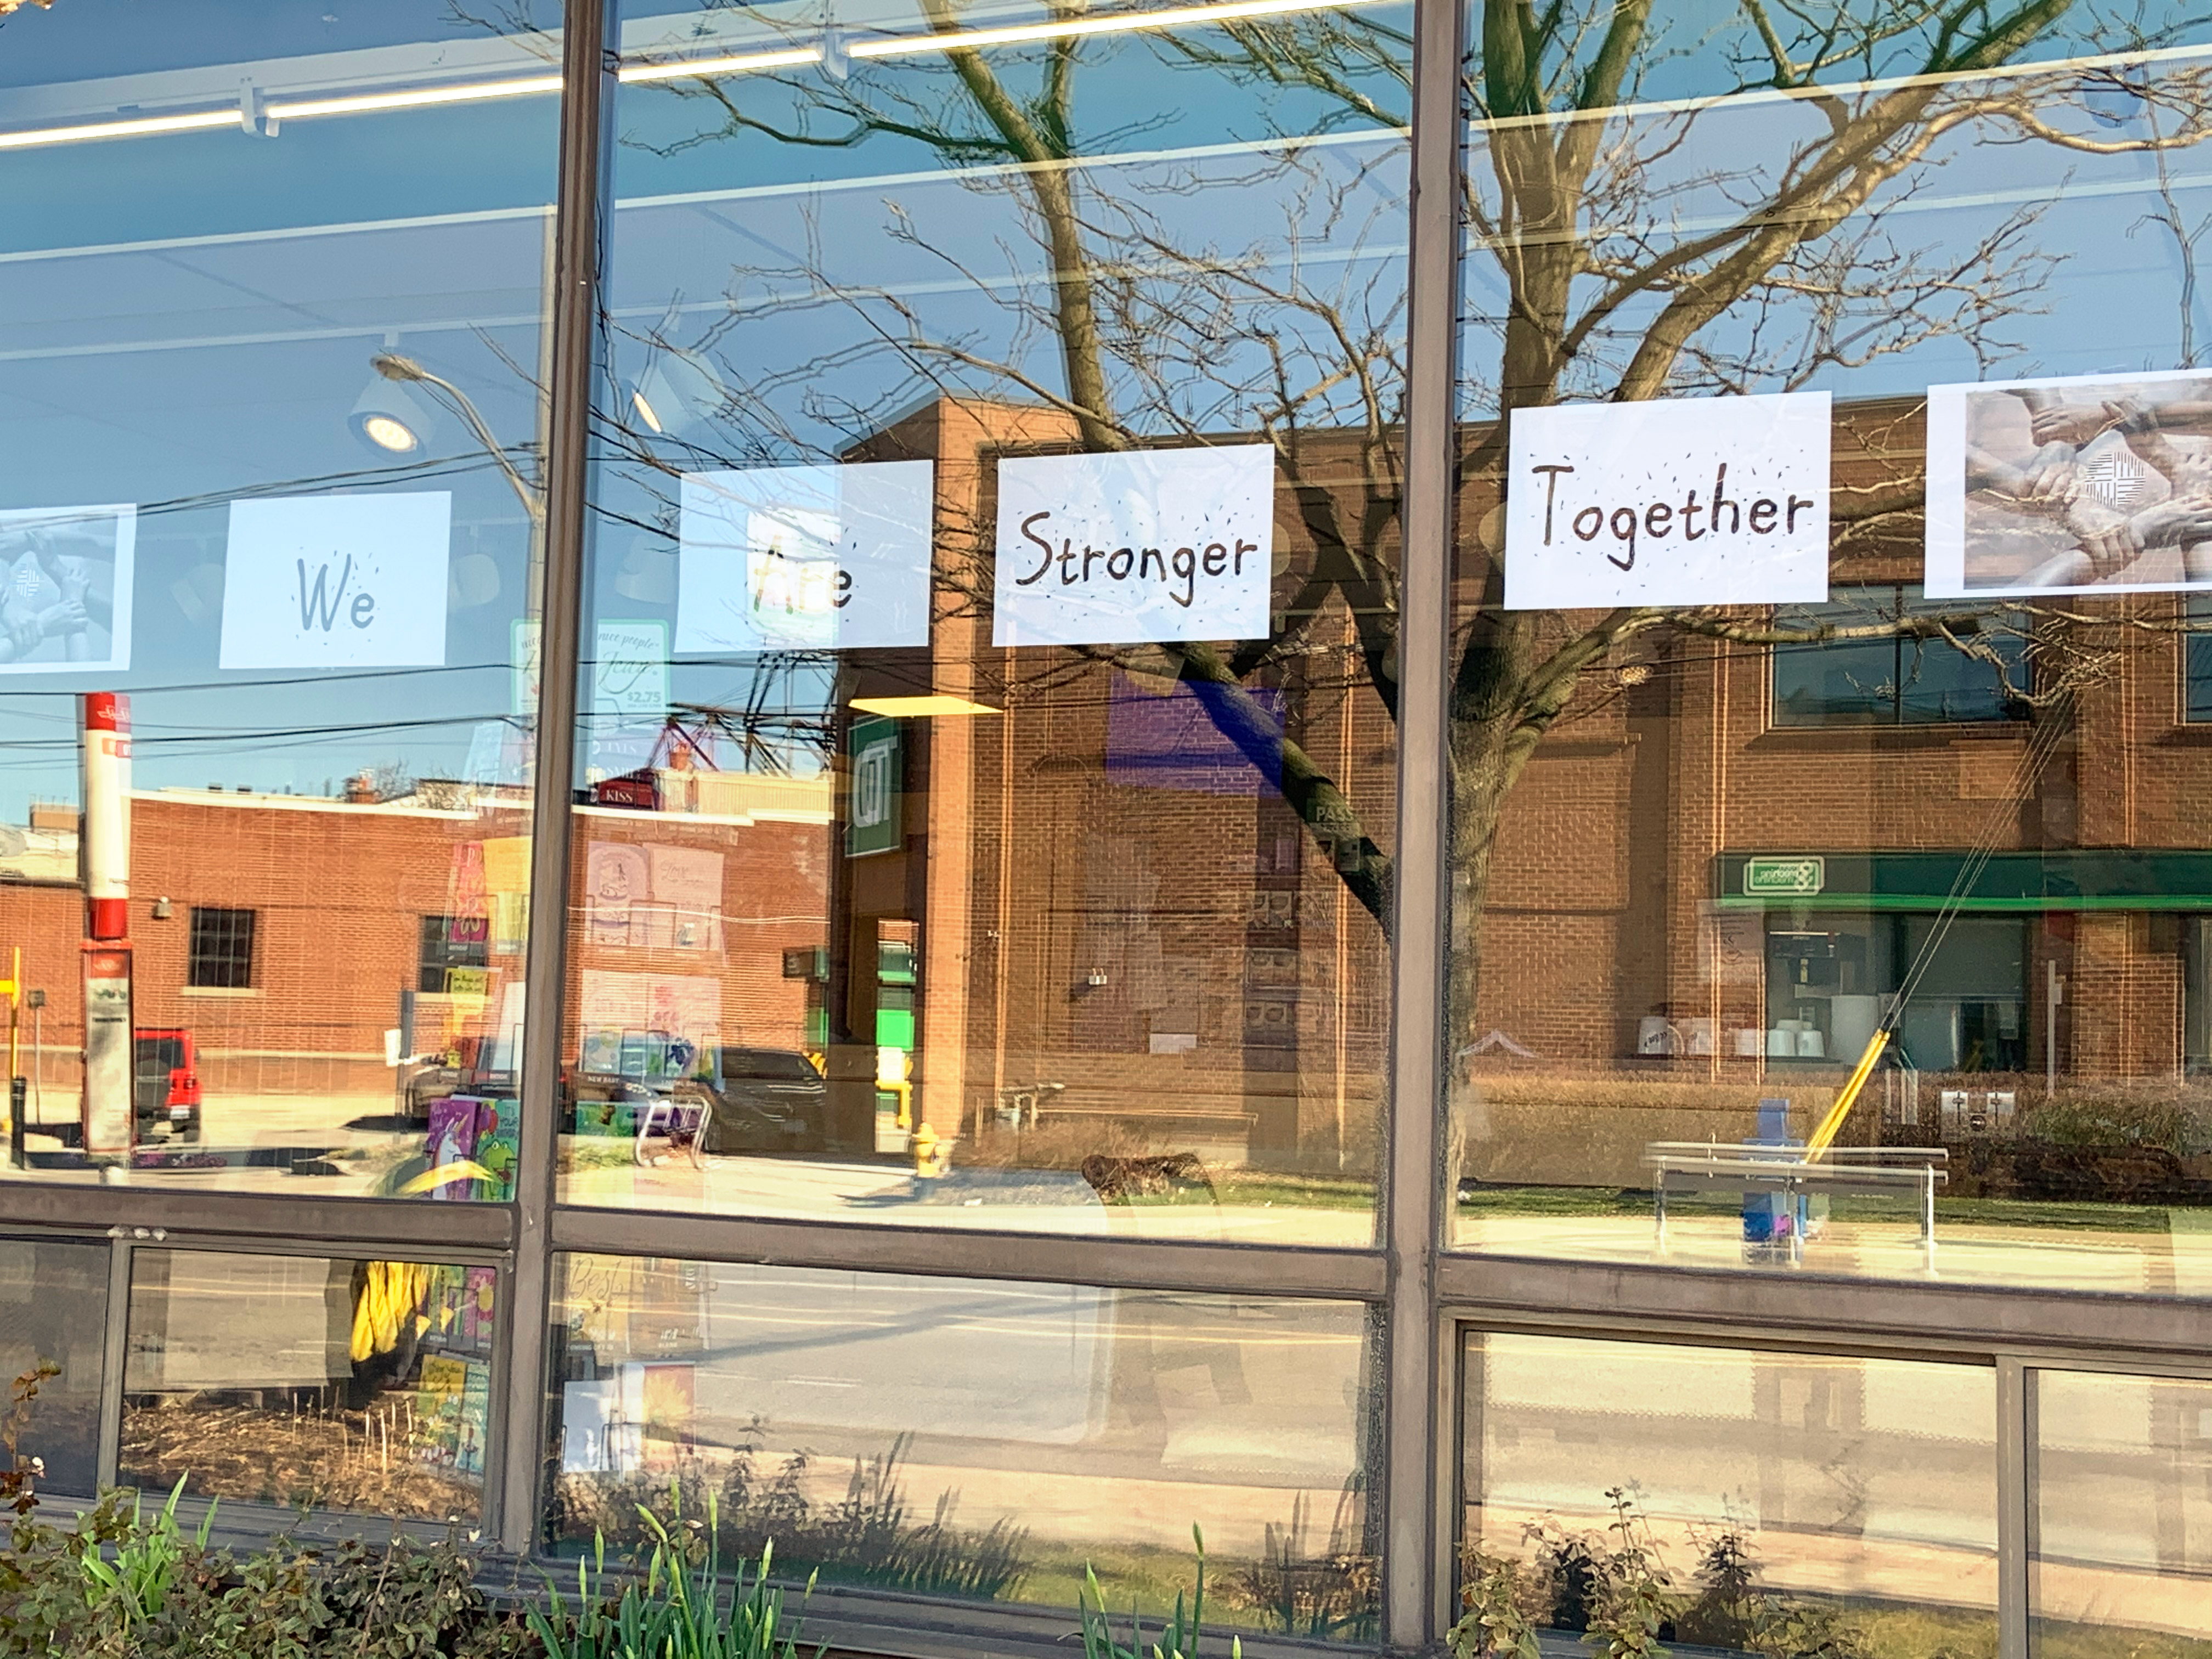 Message on window of SCOC: We are Stronger Together